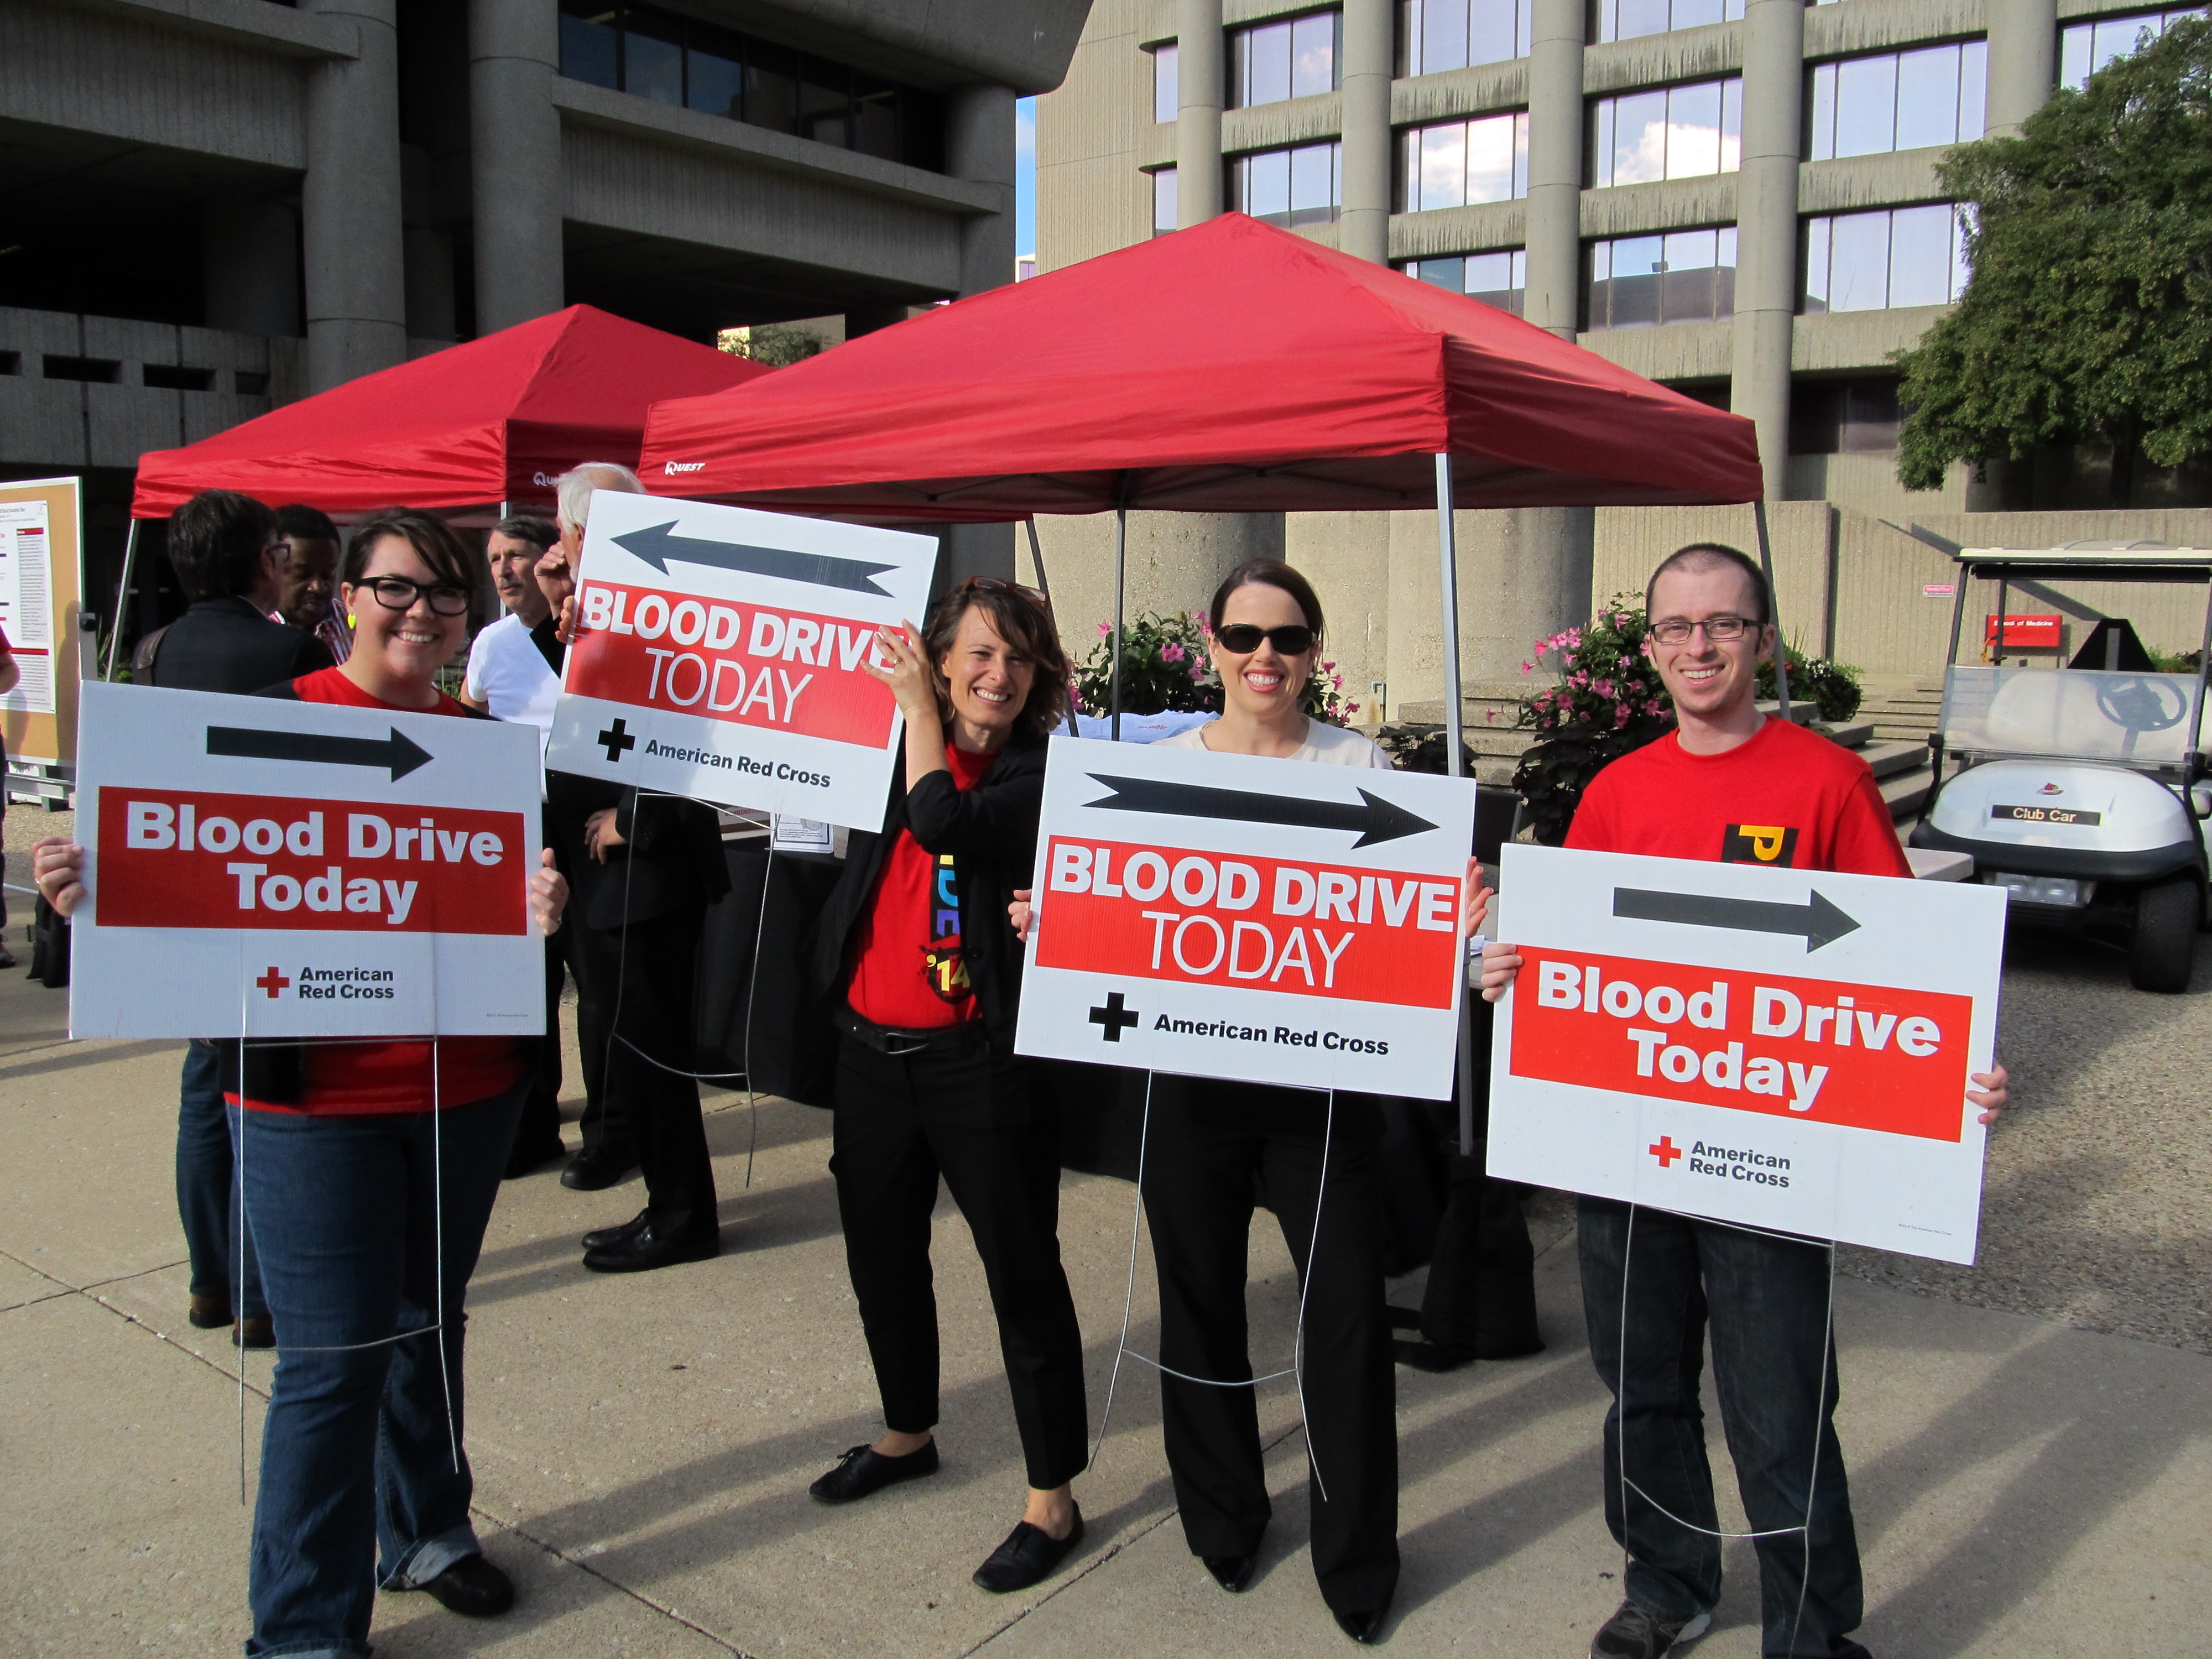 Pride Blood Drive nets needed units plus call for changes in blood donation policy